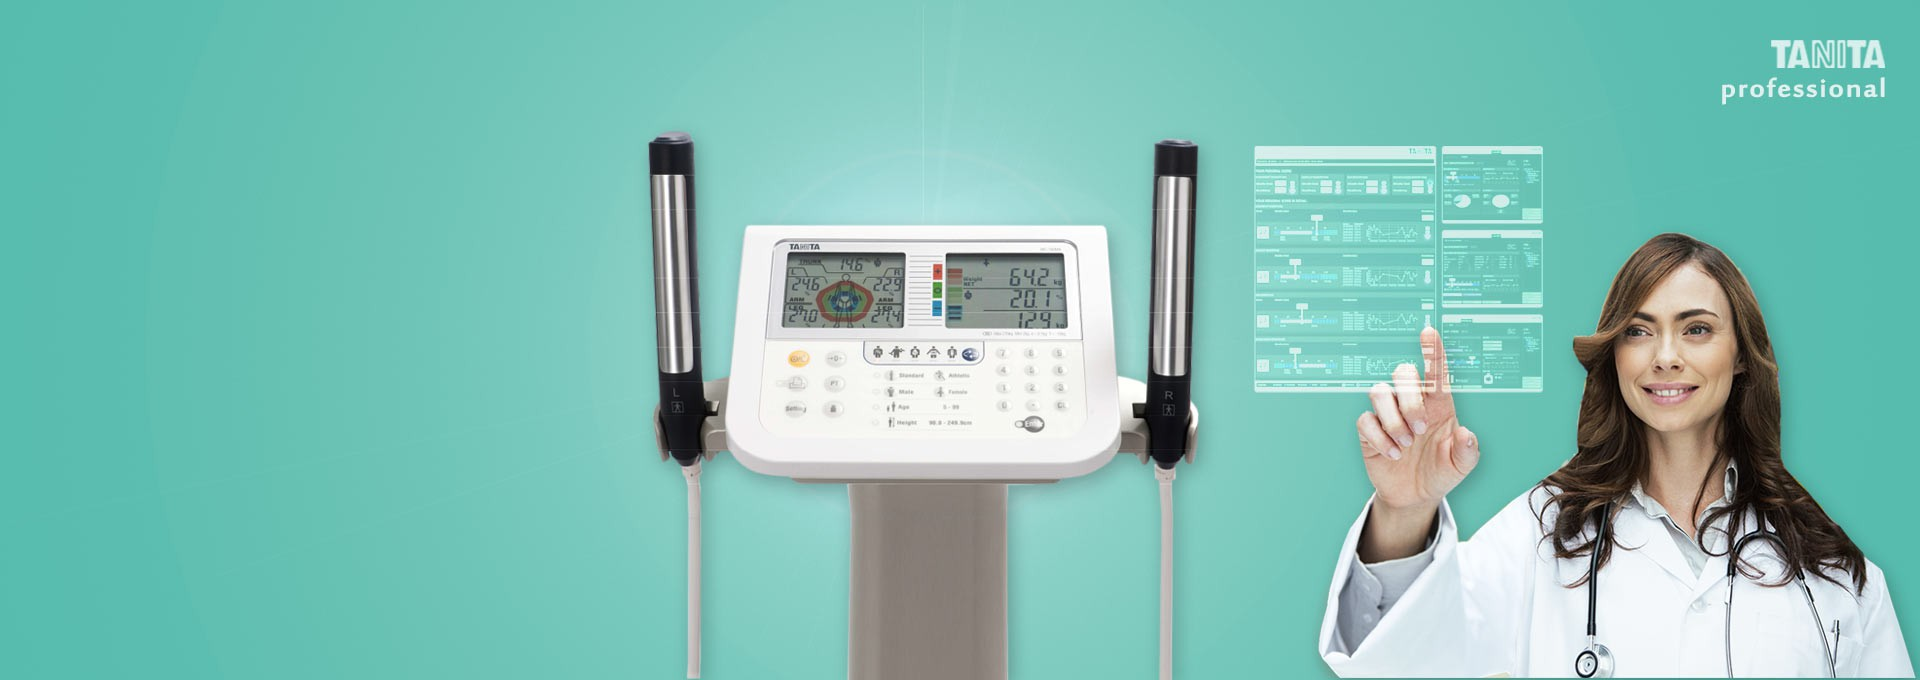 MC-780 MA Multi Frequency Segmental Body Composition Analyzer for medic and hospital